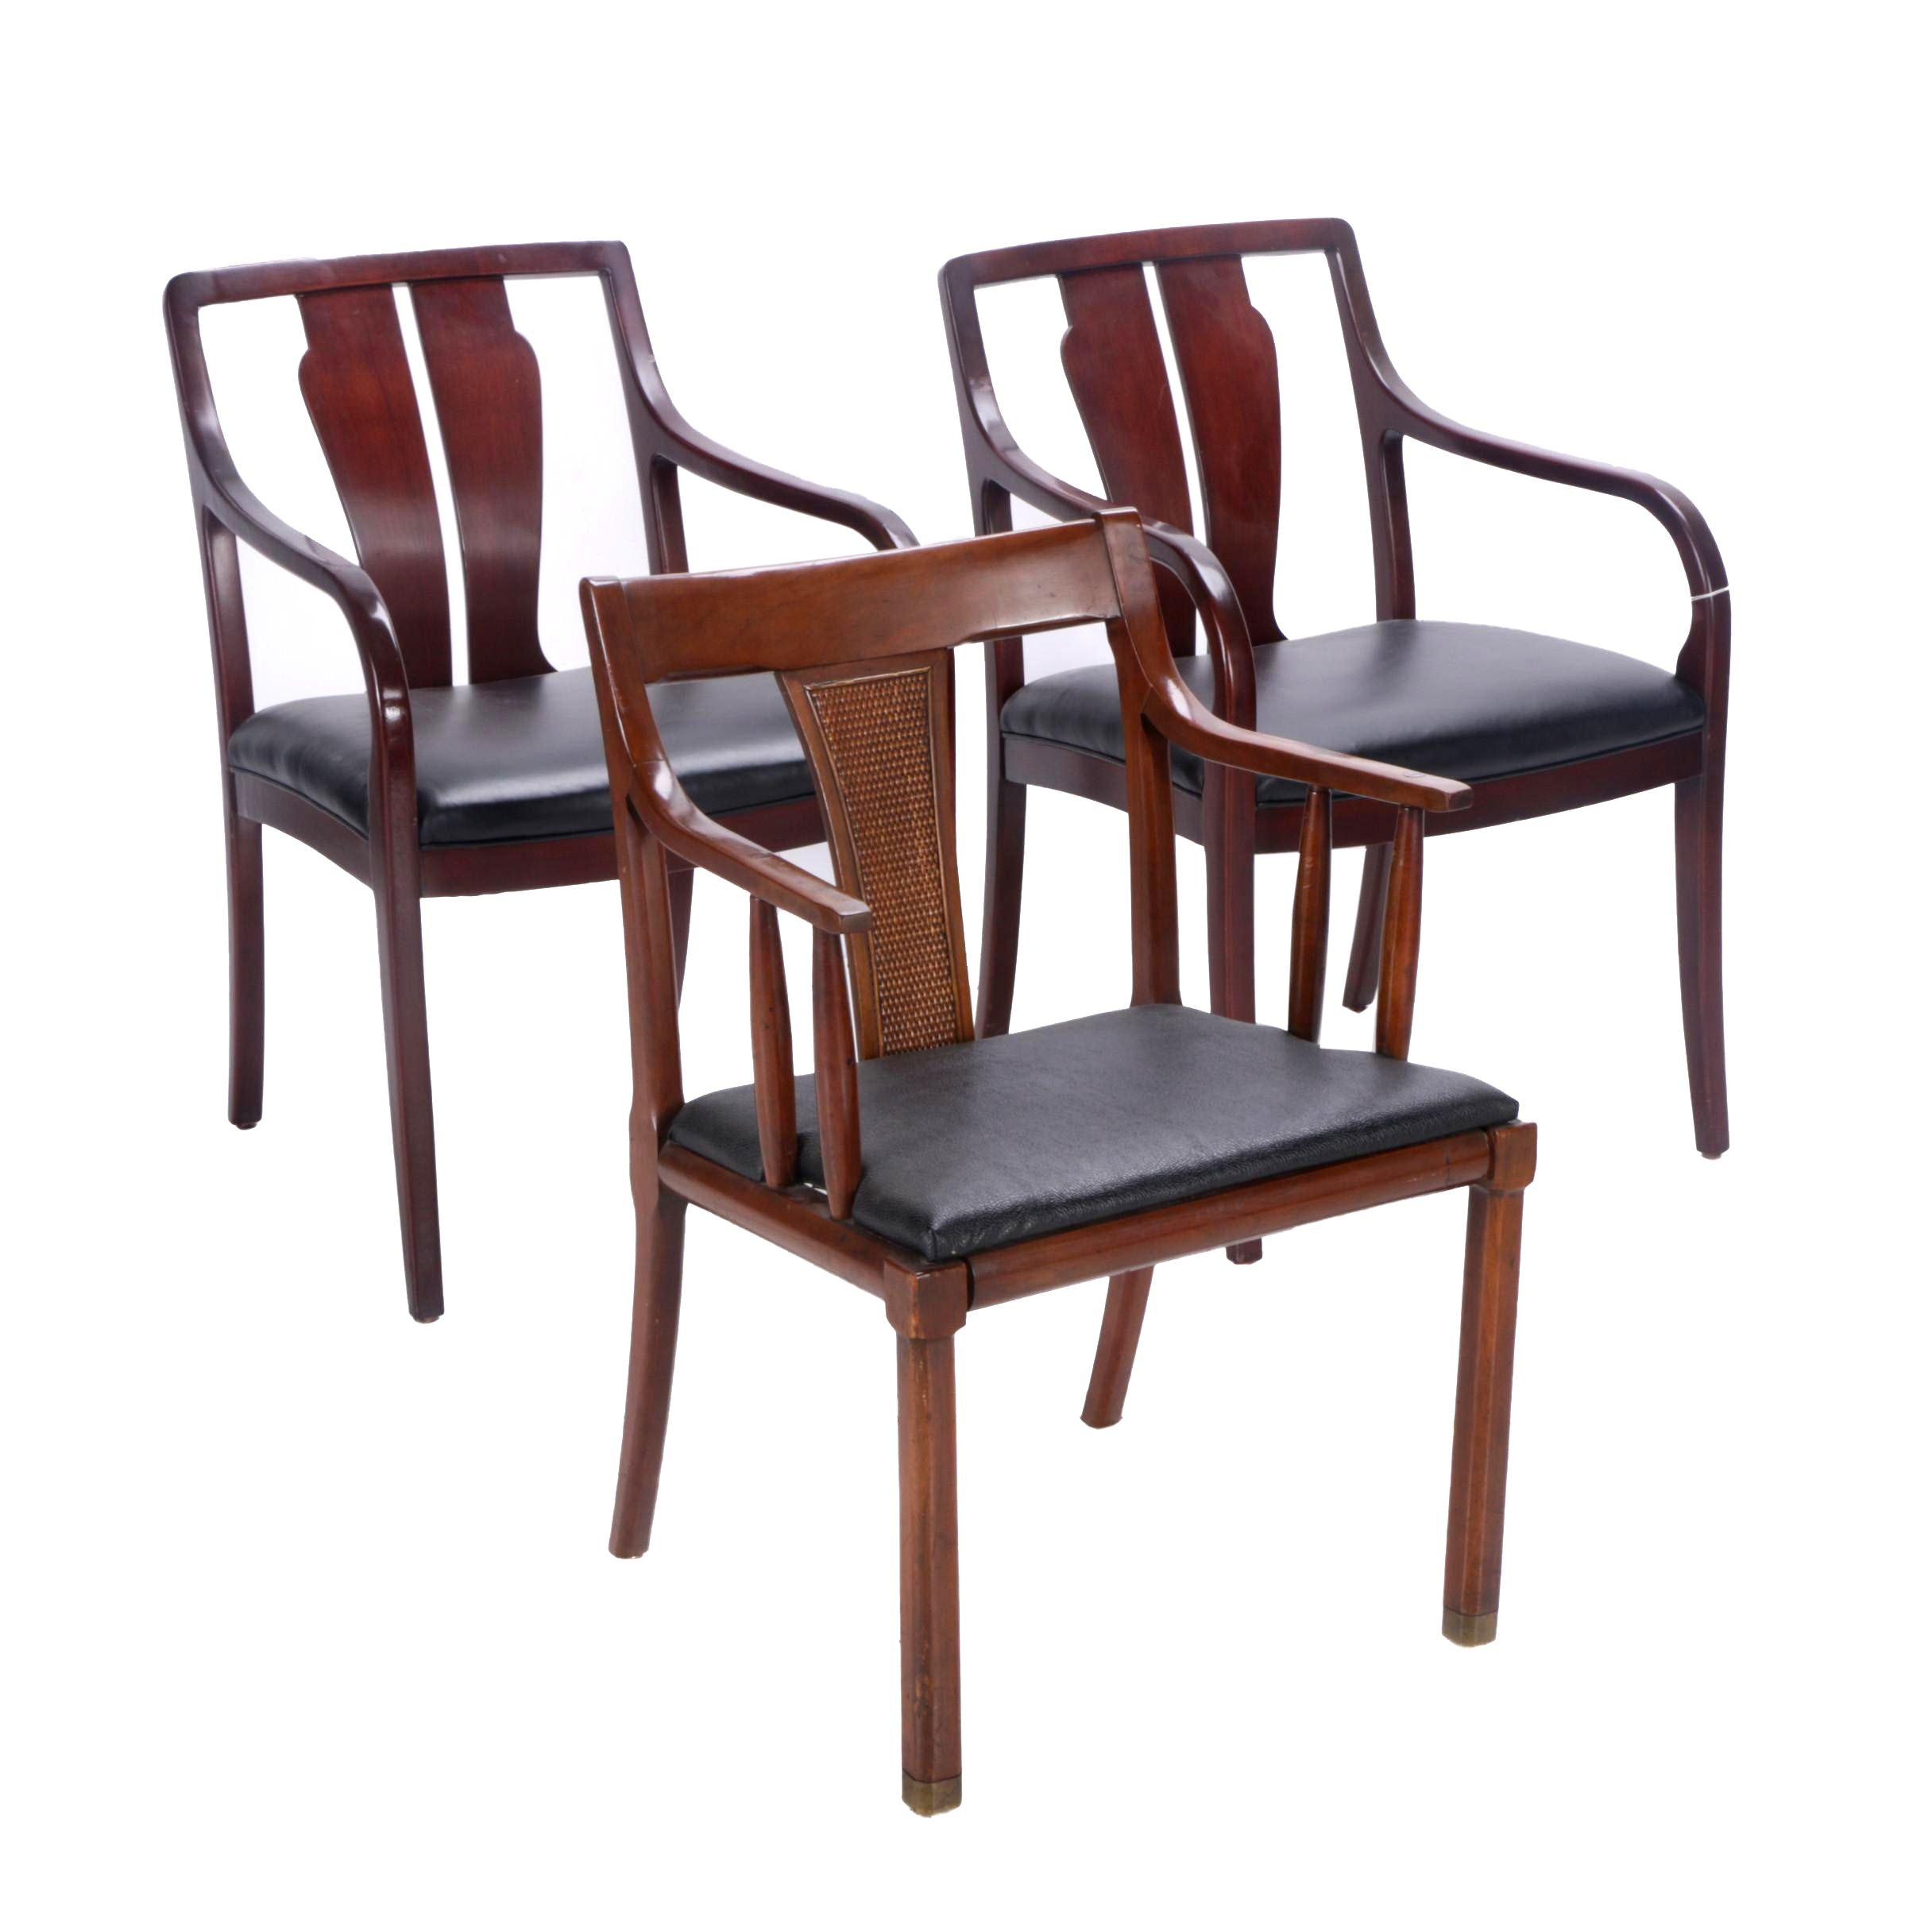 Wood and Leather Armchairs Including Cabot Wrenn Pair